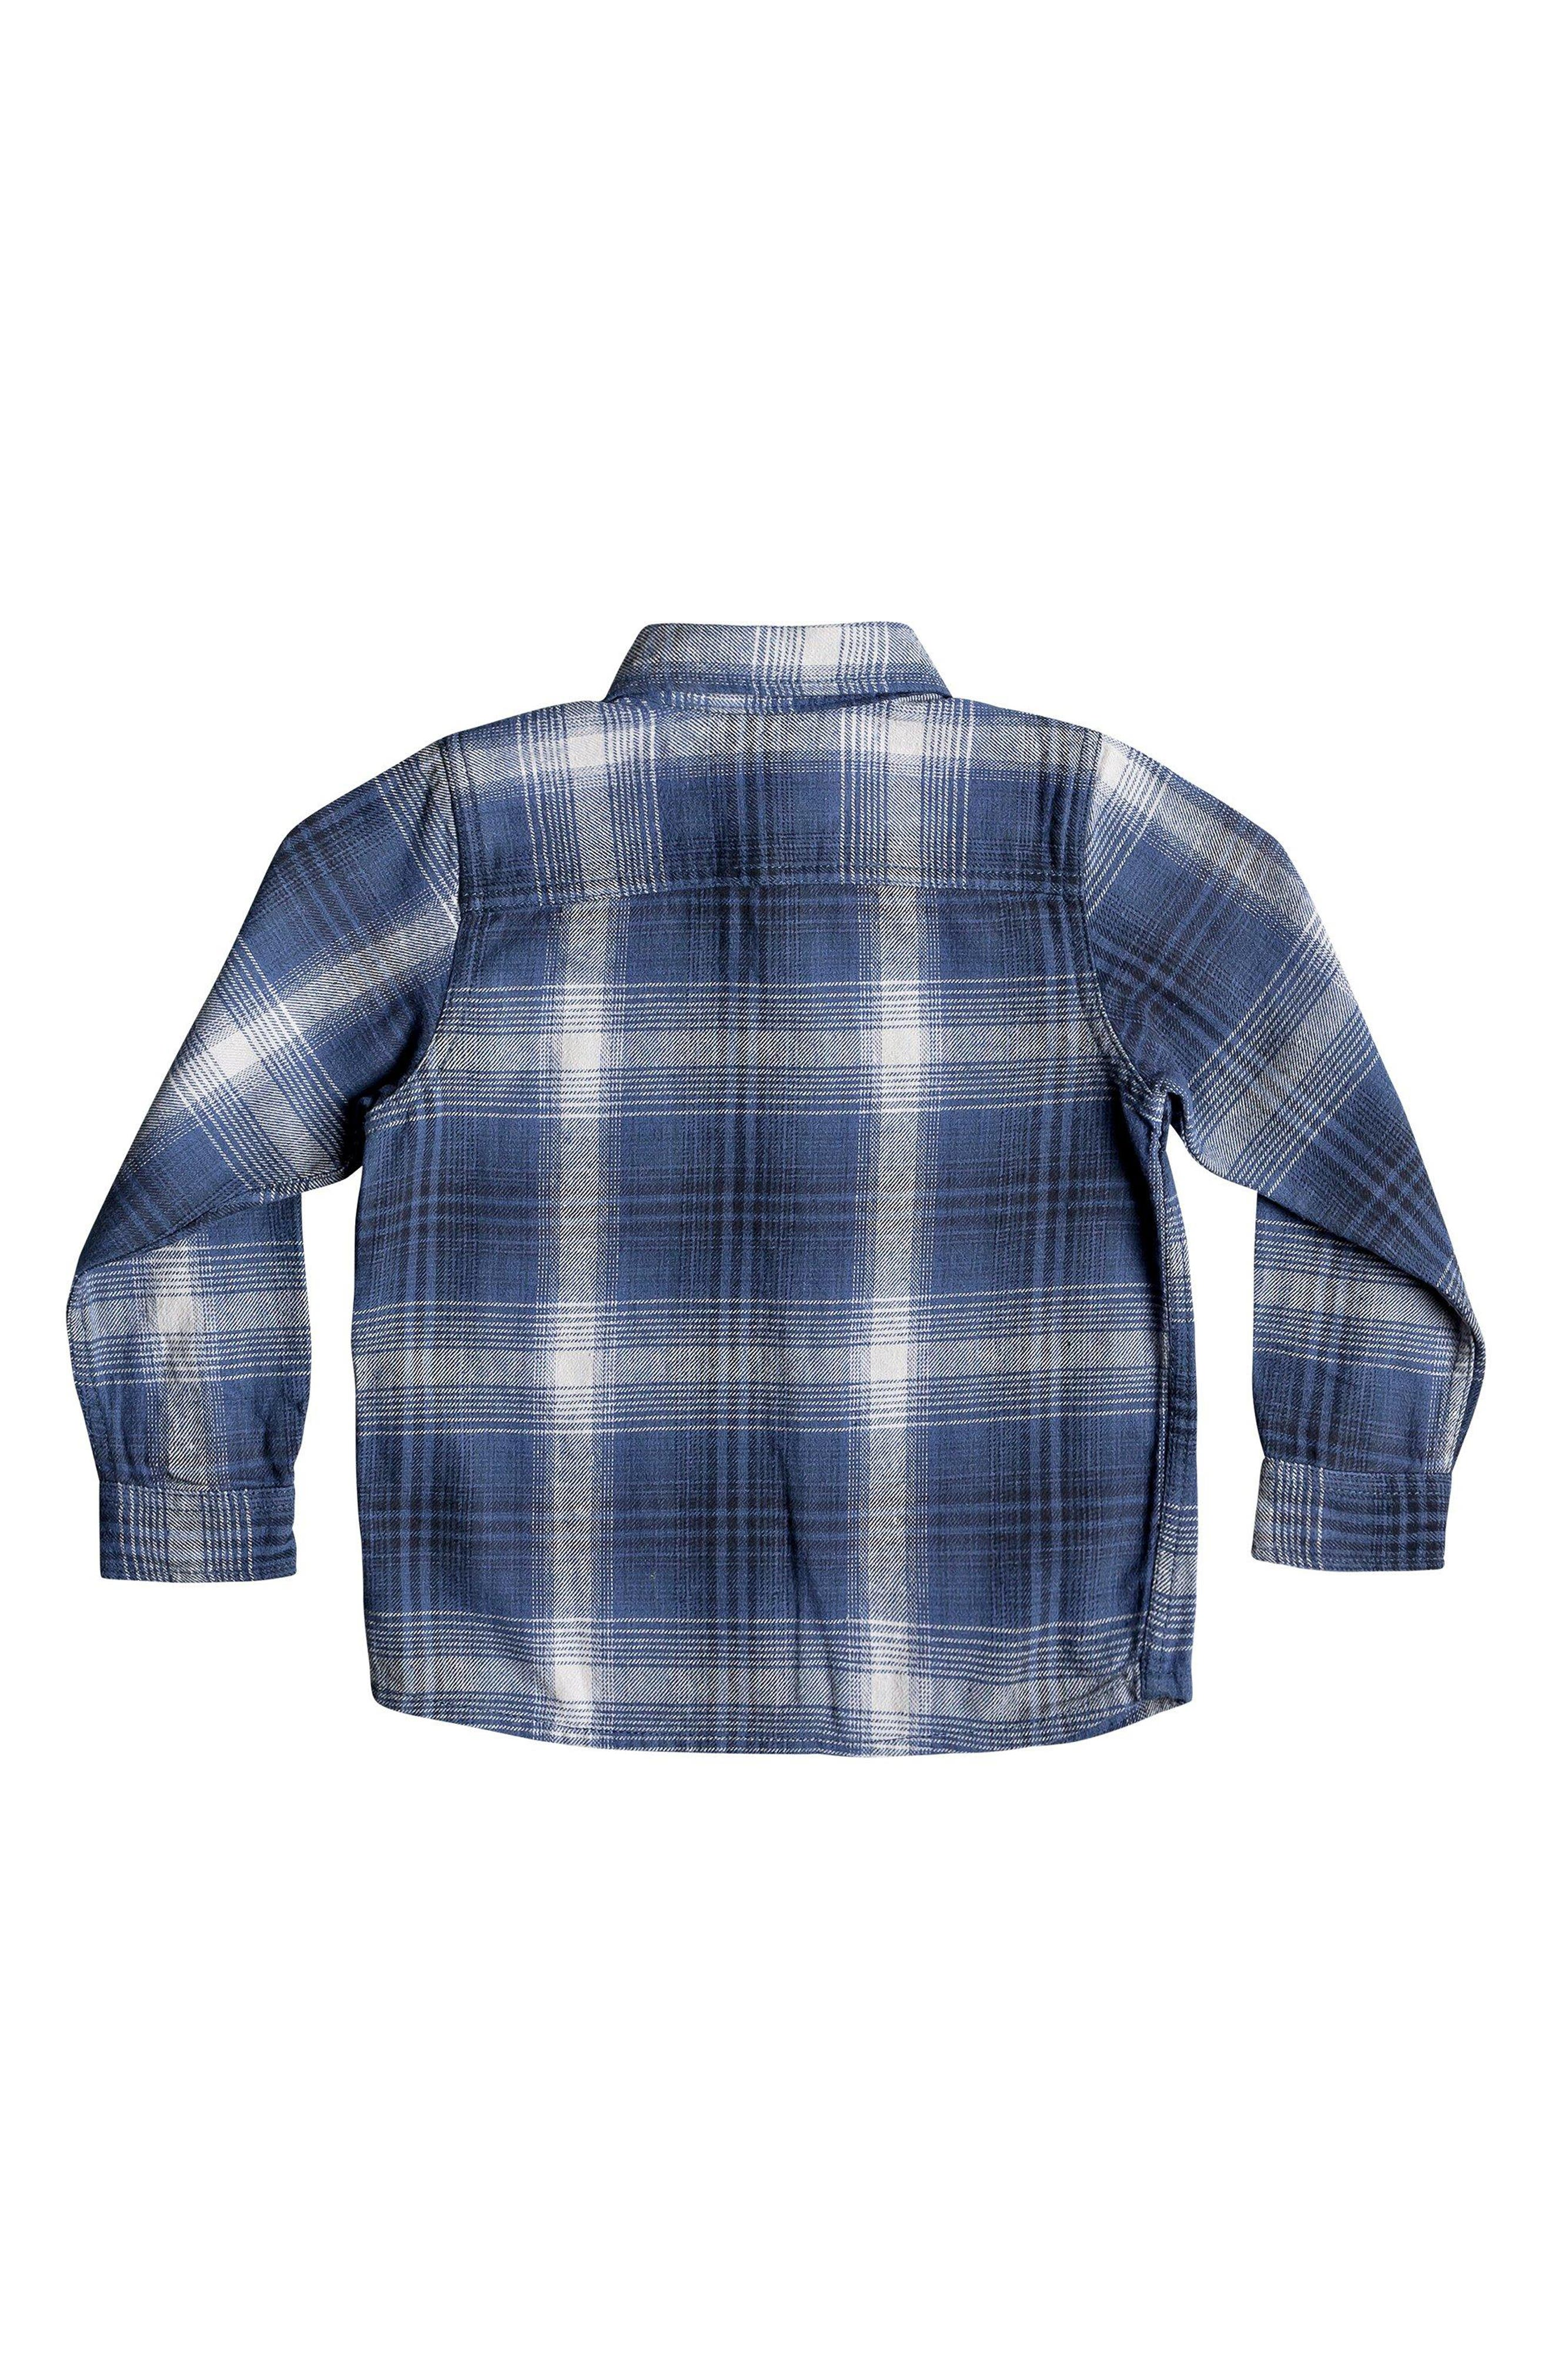 Fatherfly Flanner Shirt,                             Alternate thumbnail 2, color,                             410